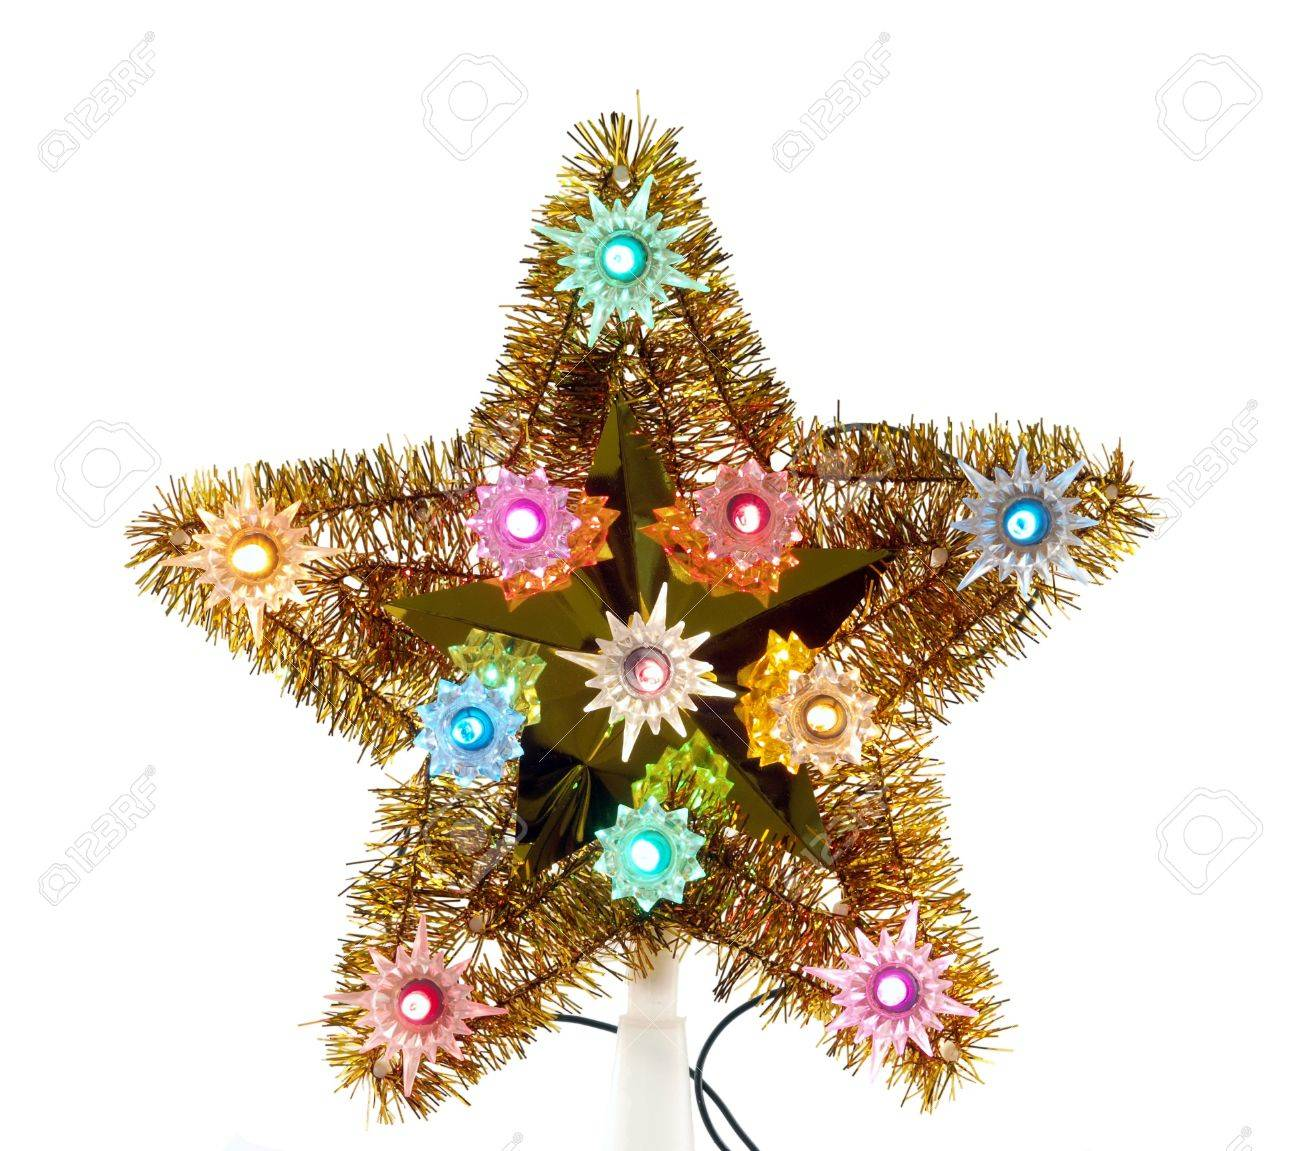 Stock Photo - Vintage Christmas tree star decoration from the 1960's.